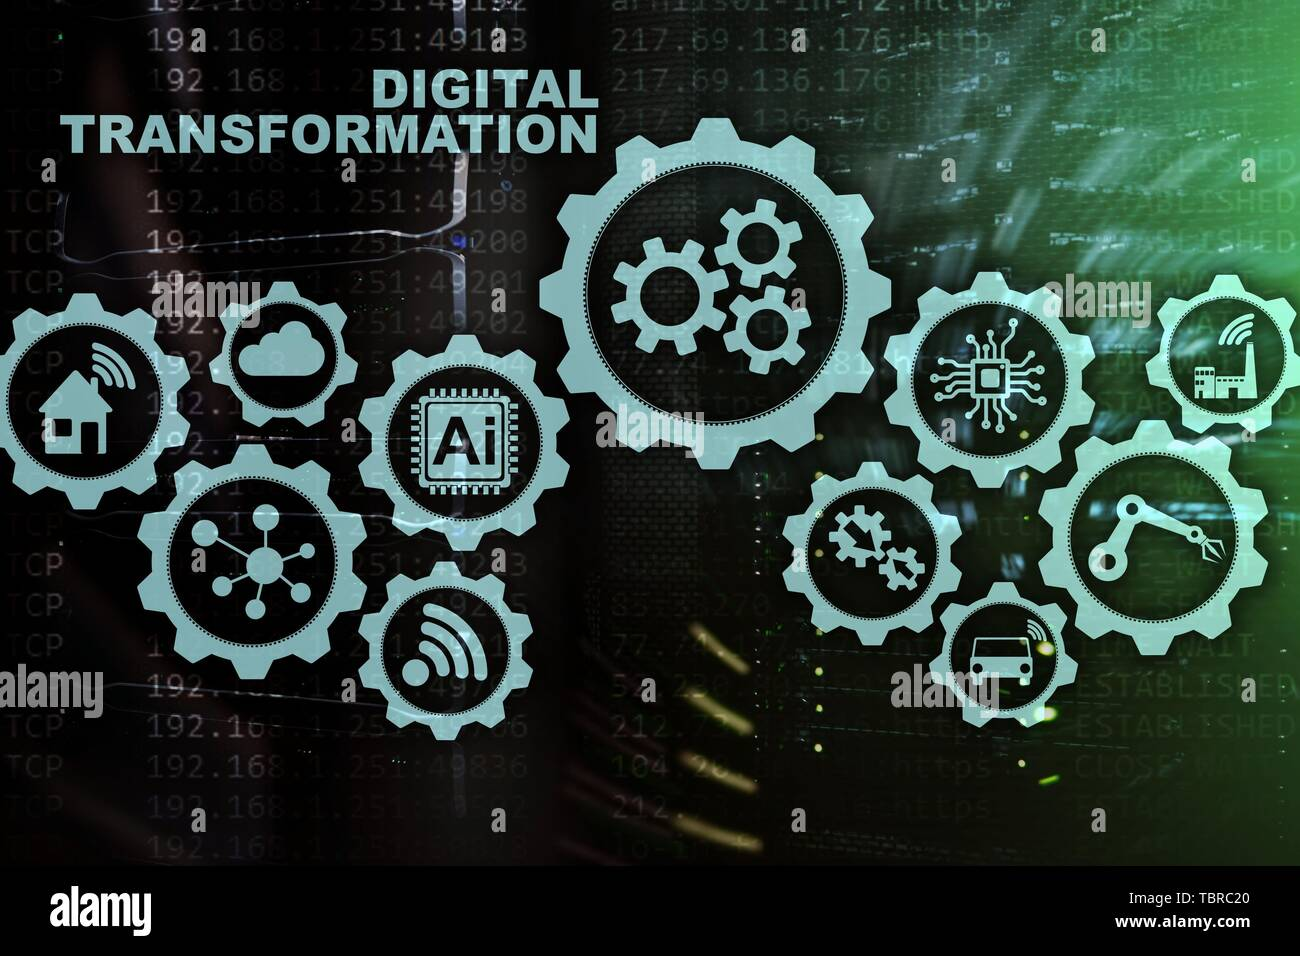 Digital Transformation Concept of digitalization of technology business processes. Datacenter background - Stock Image